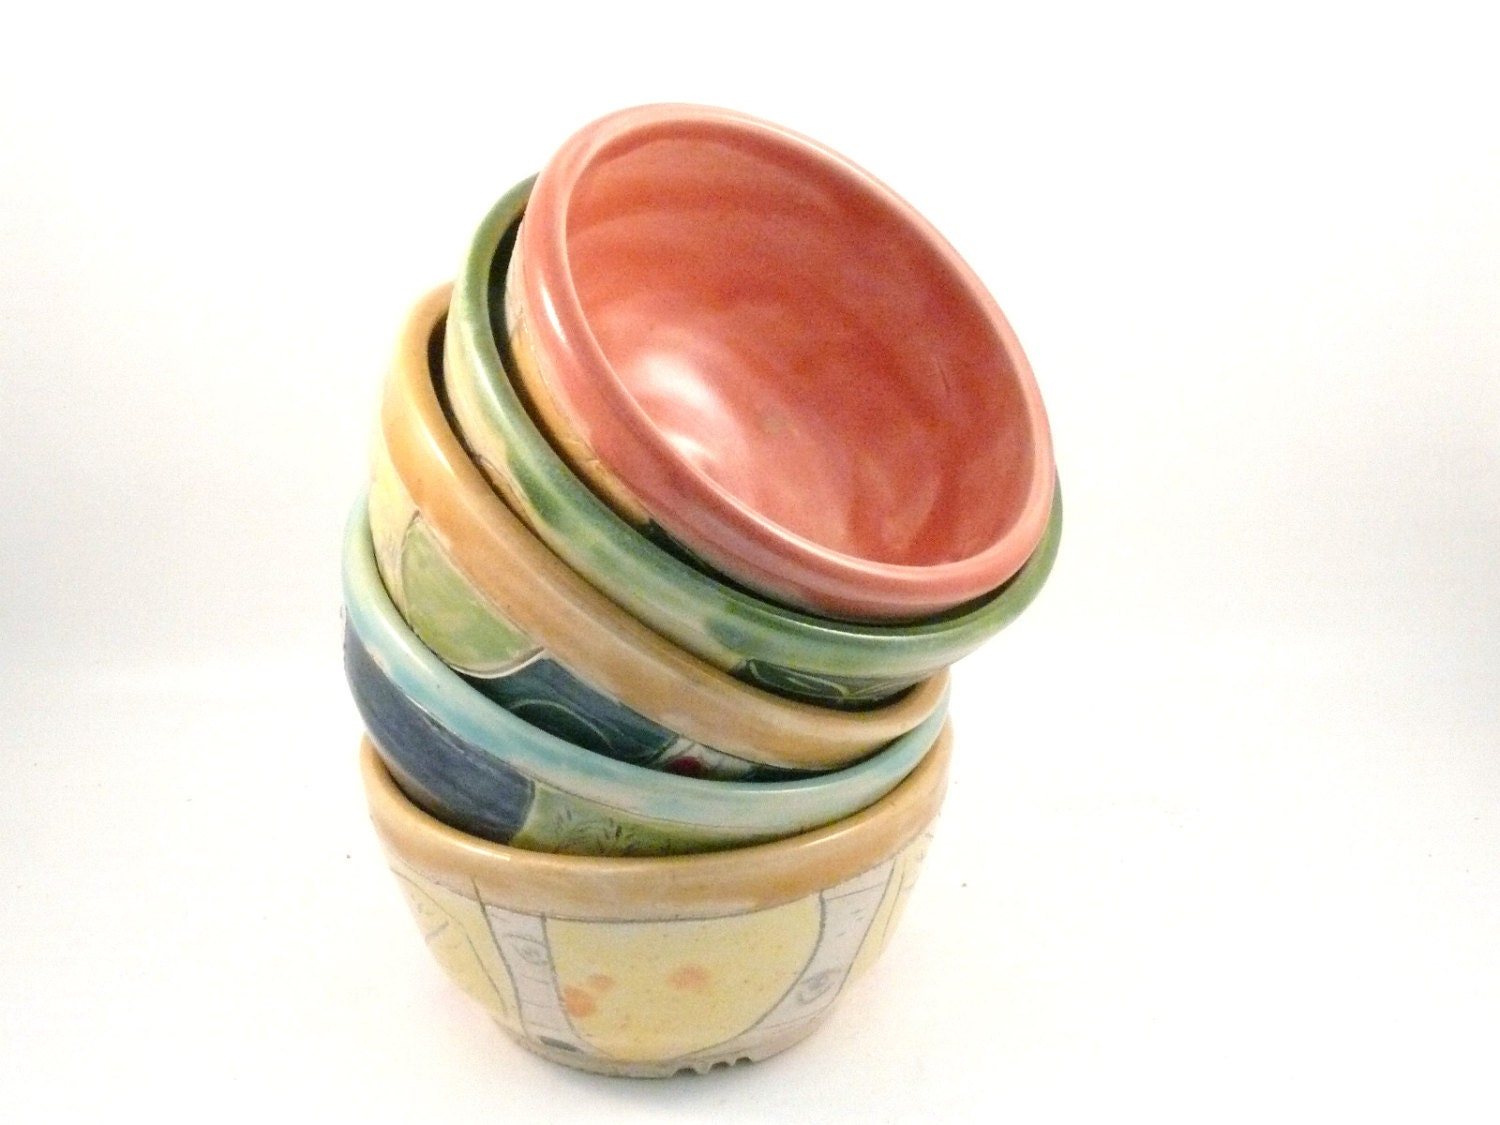 One Ceramic Handmade Salad bowl, cereal bowl or soup bowl  - holds 3 cups